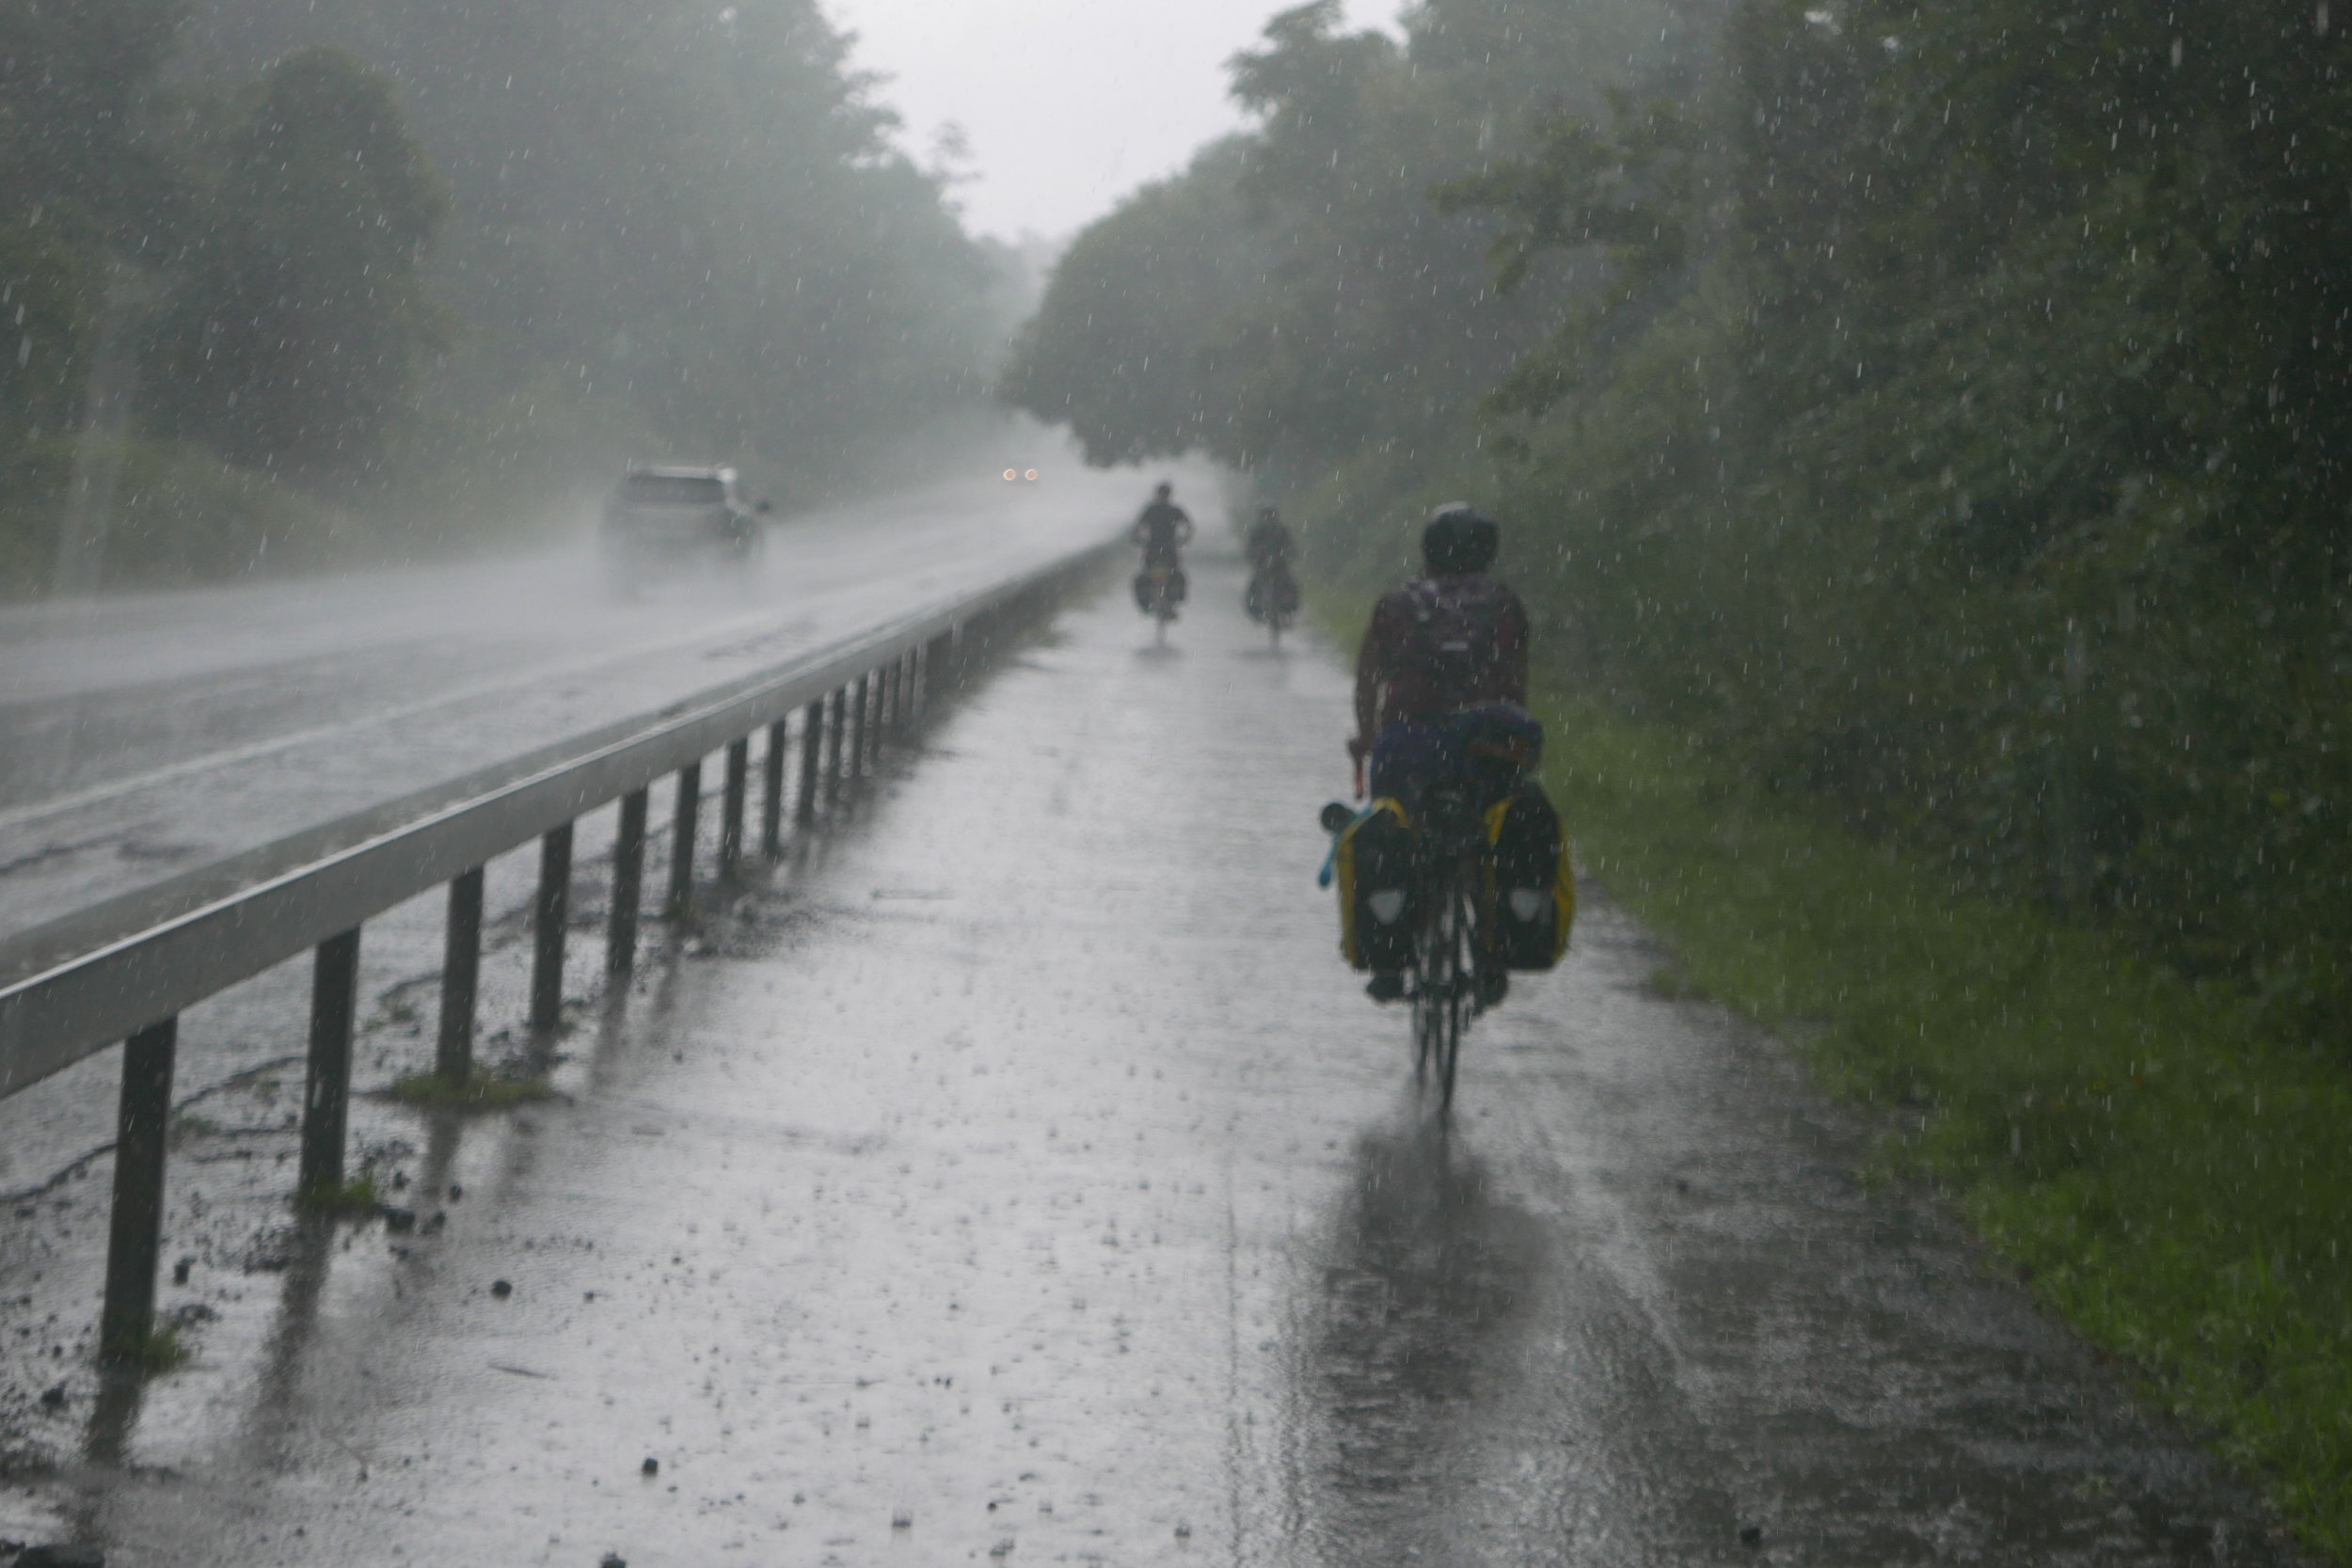 Between Miles 35 and 42, the group ran into the first of 2 storms